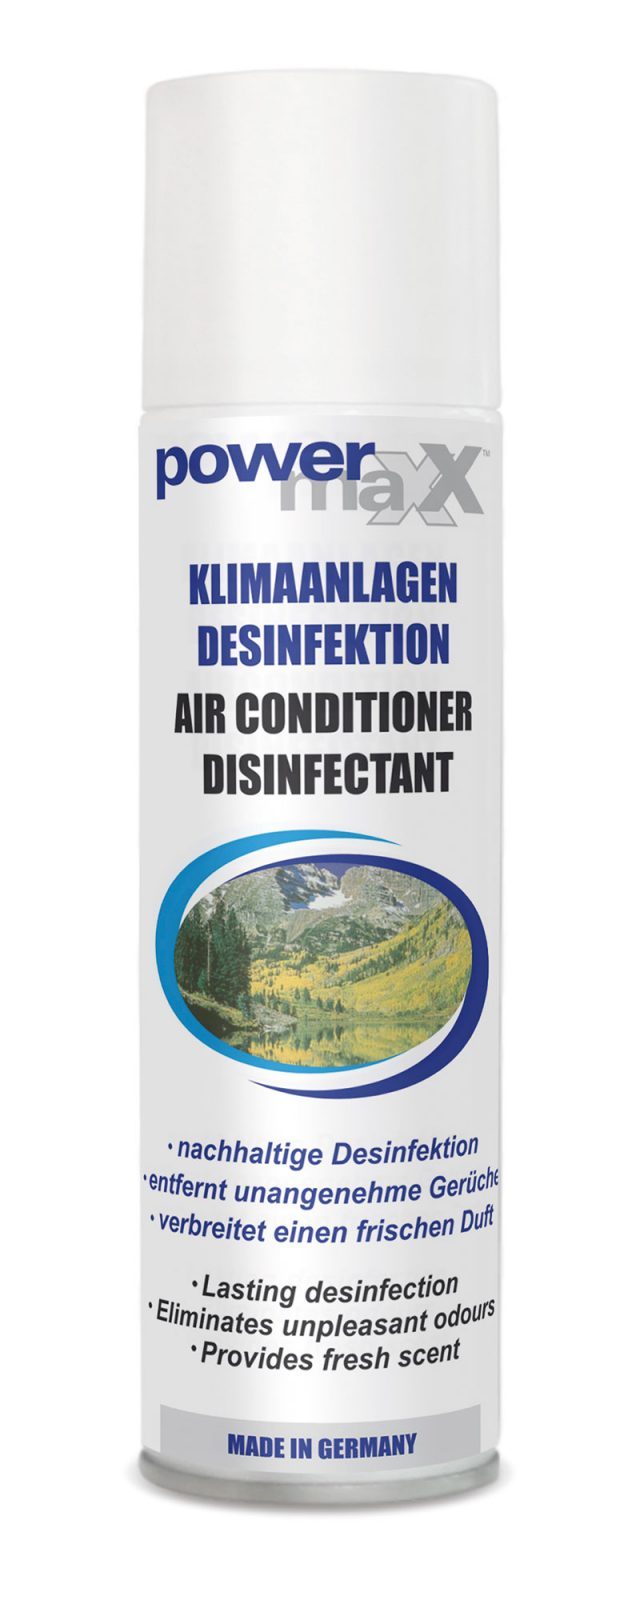 Air-Conditioner-Disinfectant